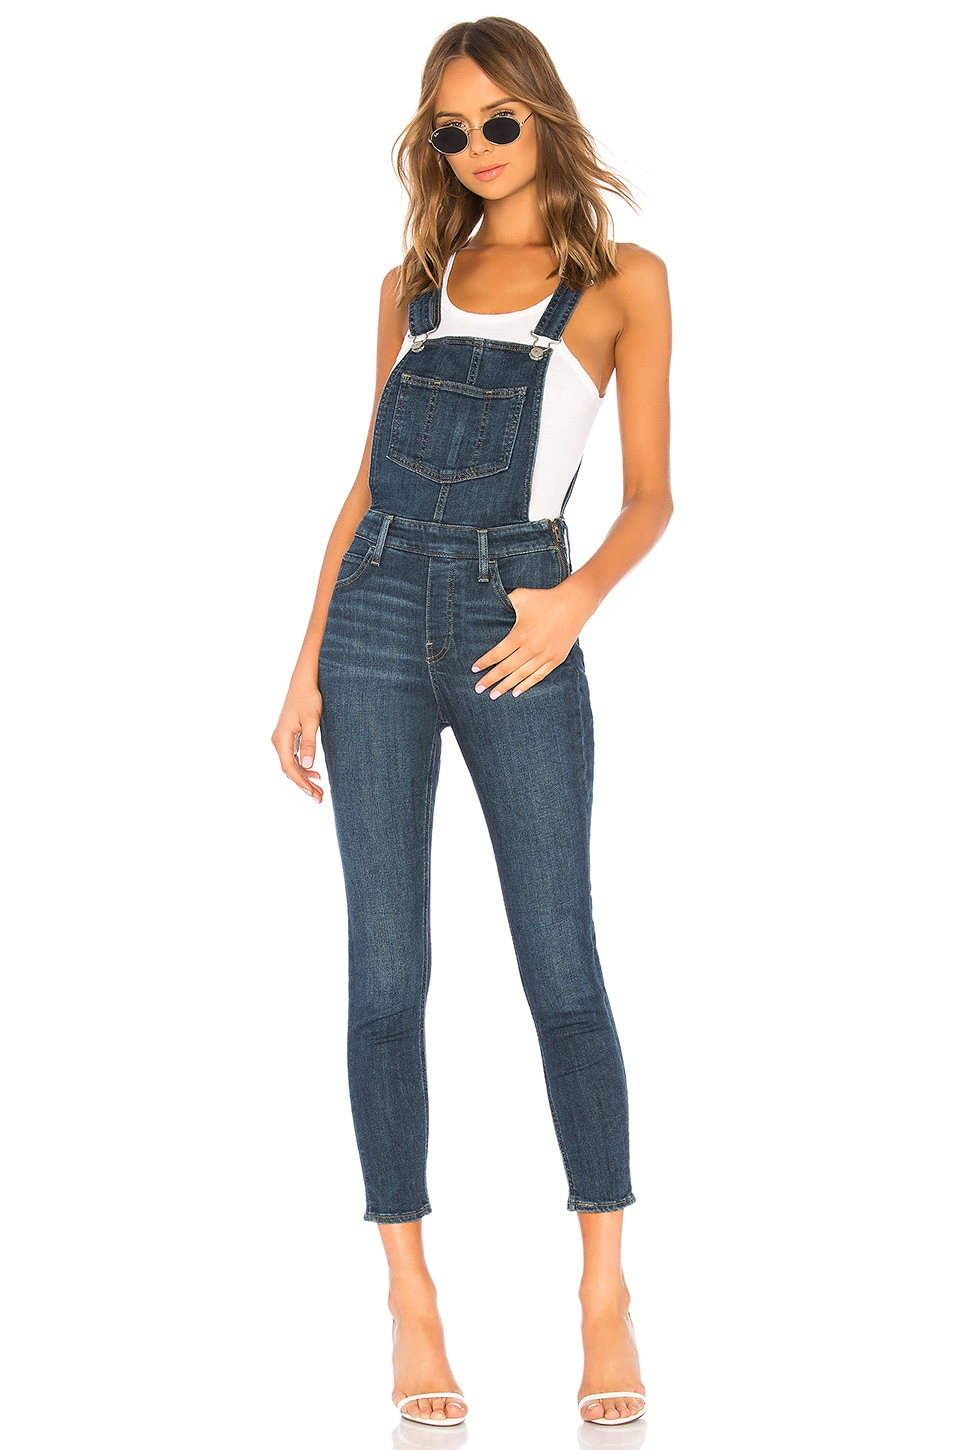 LEVI'S Skinny Overall in Over And Out